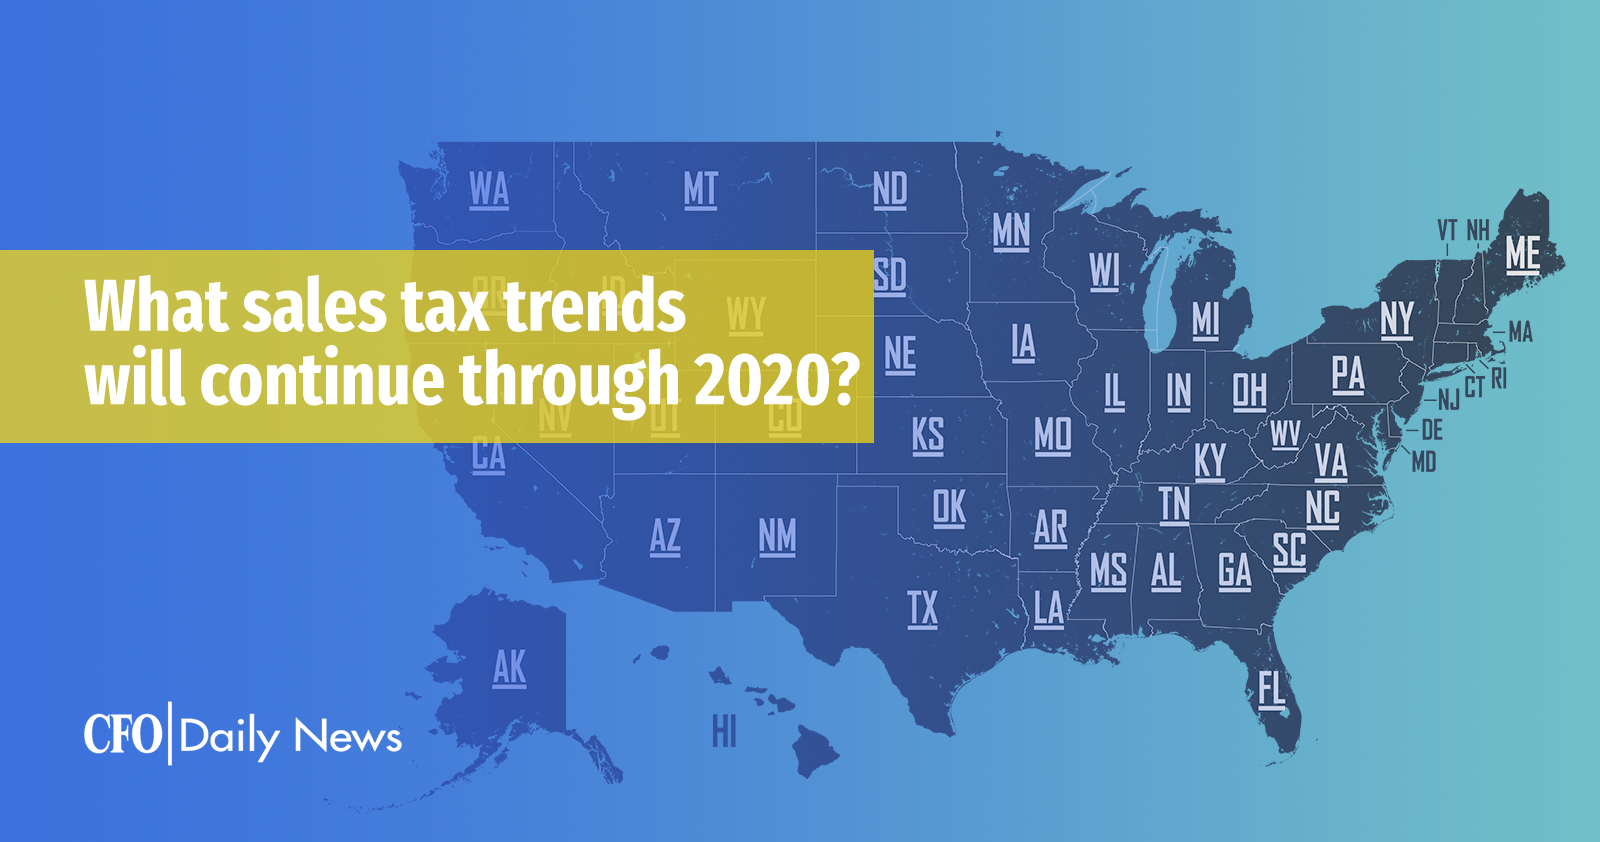 what sales tax trends will continue through 2020